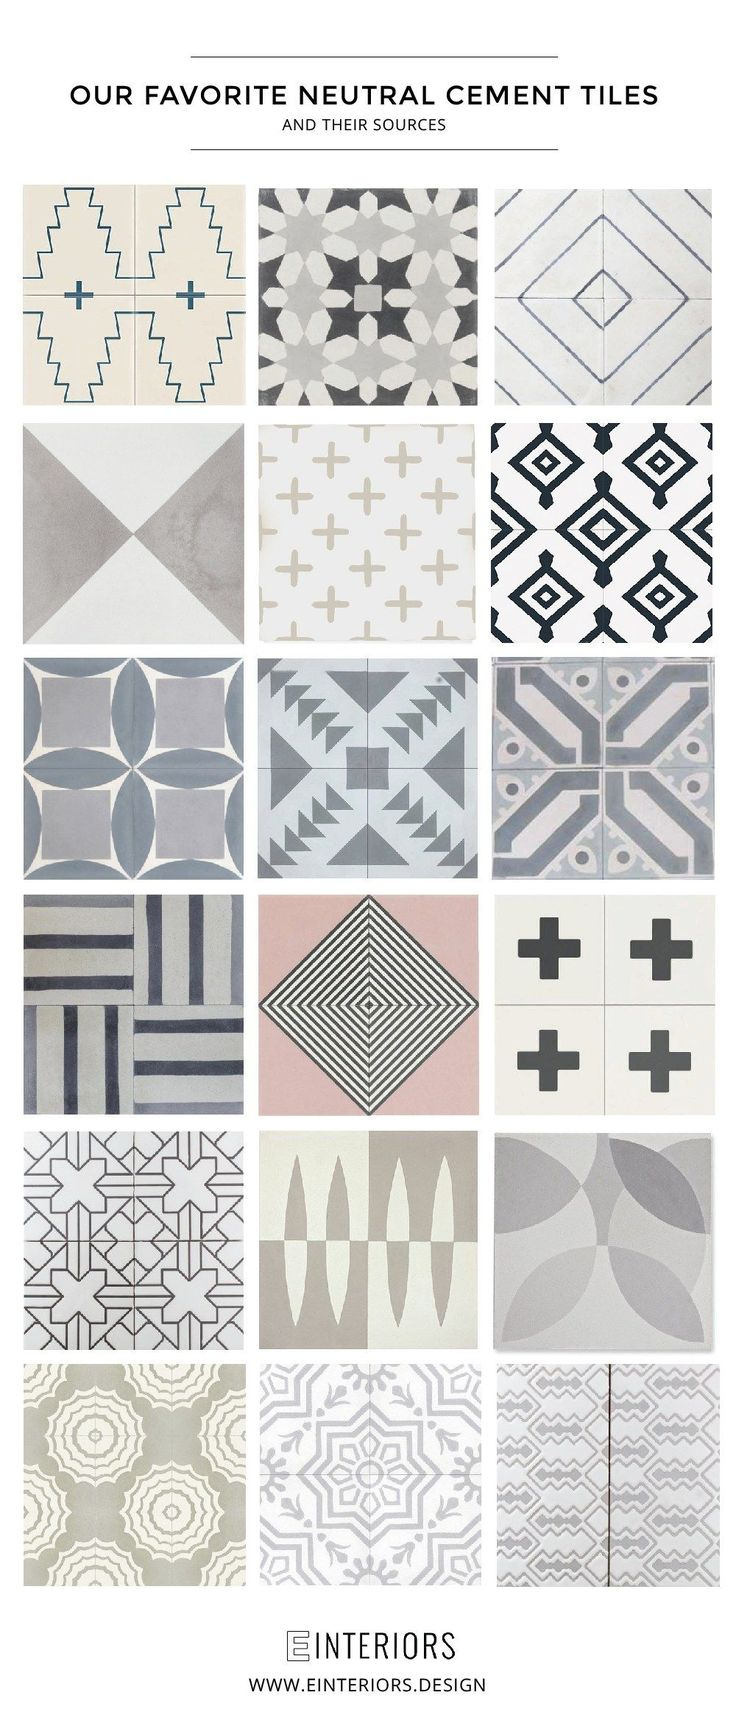 THE BEST NEUTRAL CEMENT TILES  Cement tile is gorgeous and we are using it in several of our projects. We are sharing 18 of our favorite neutral options and where to find them